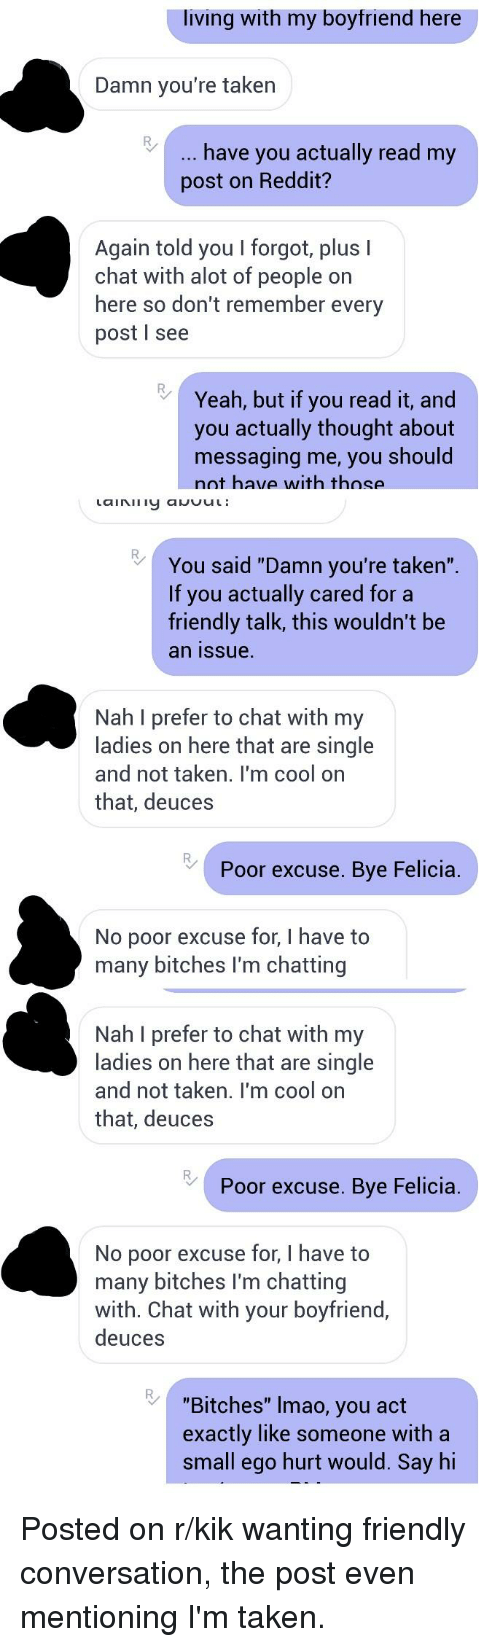 Bitches on kik